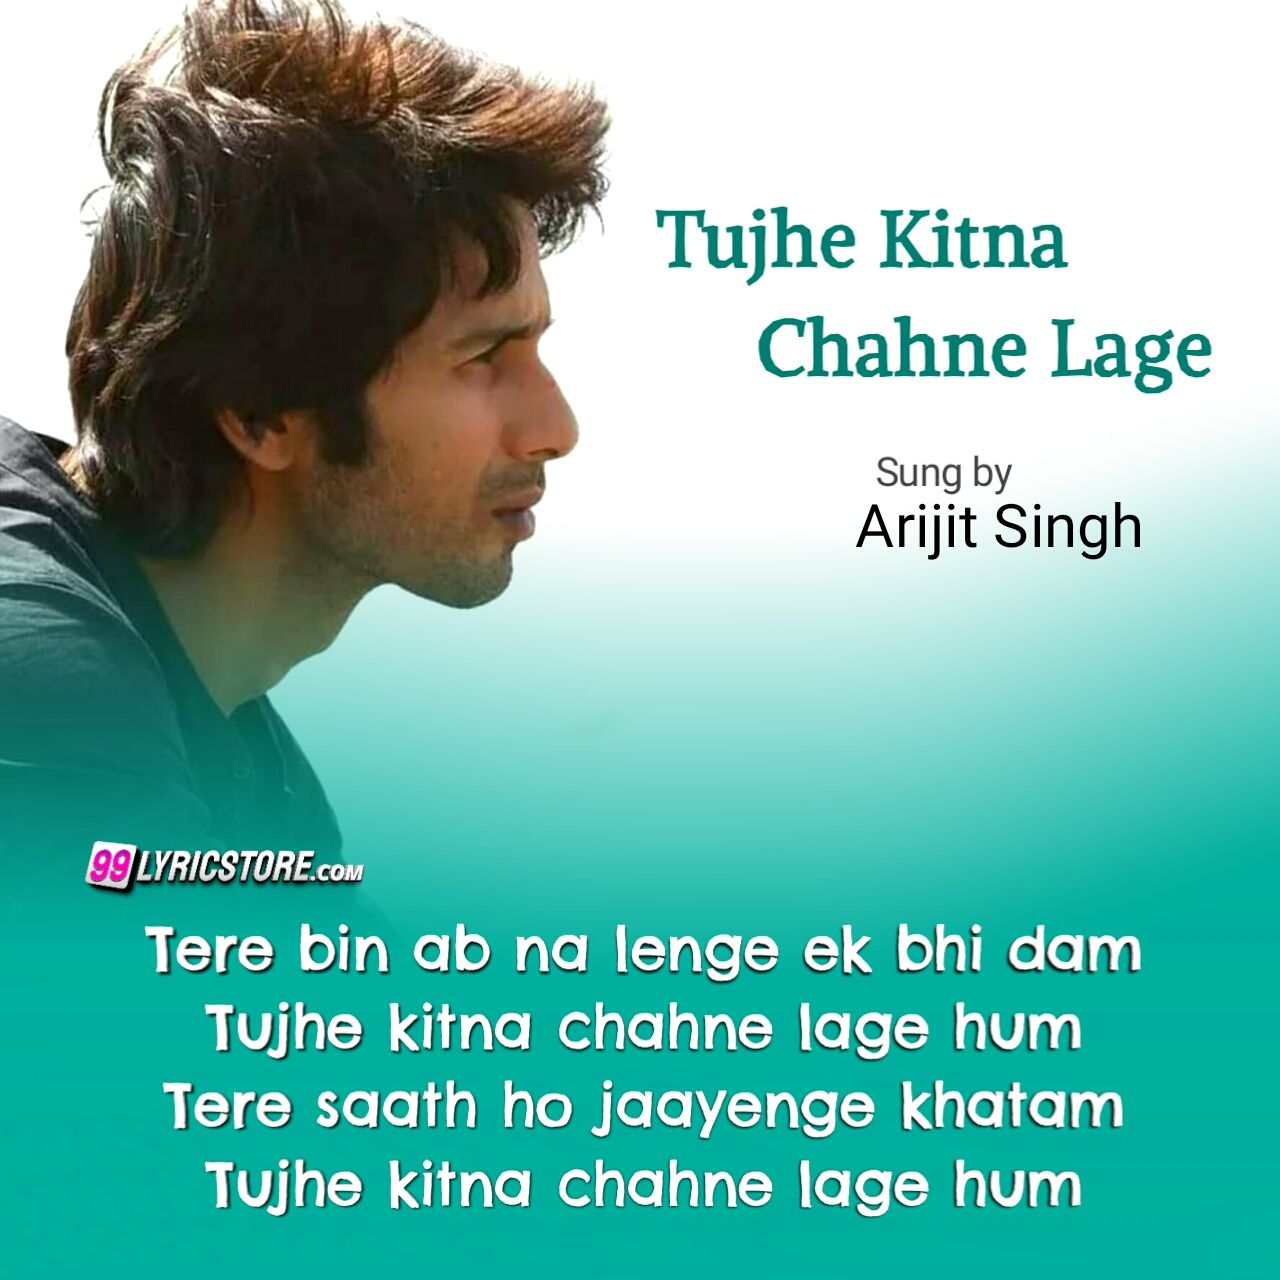 Tujhe kitna chahne lage hum love Hindi songs Lyrics sung by Arijit Singh